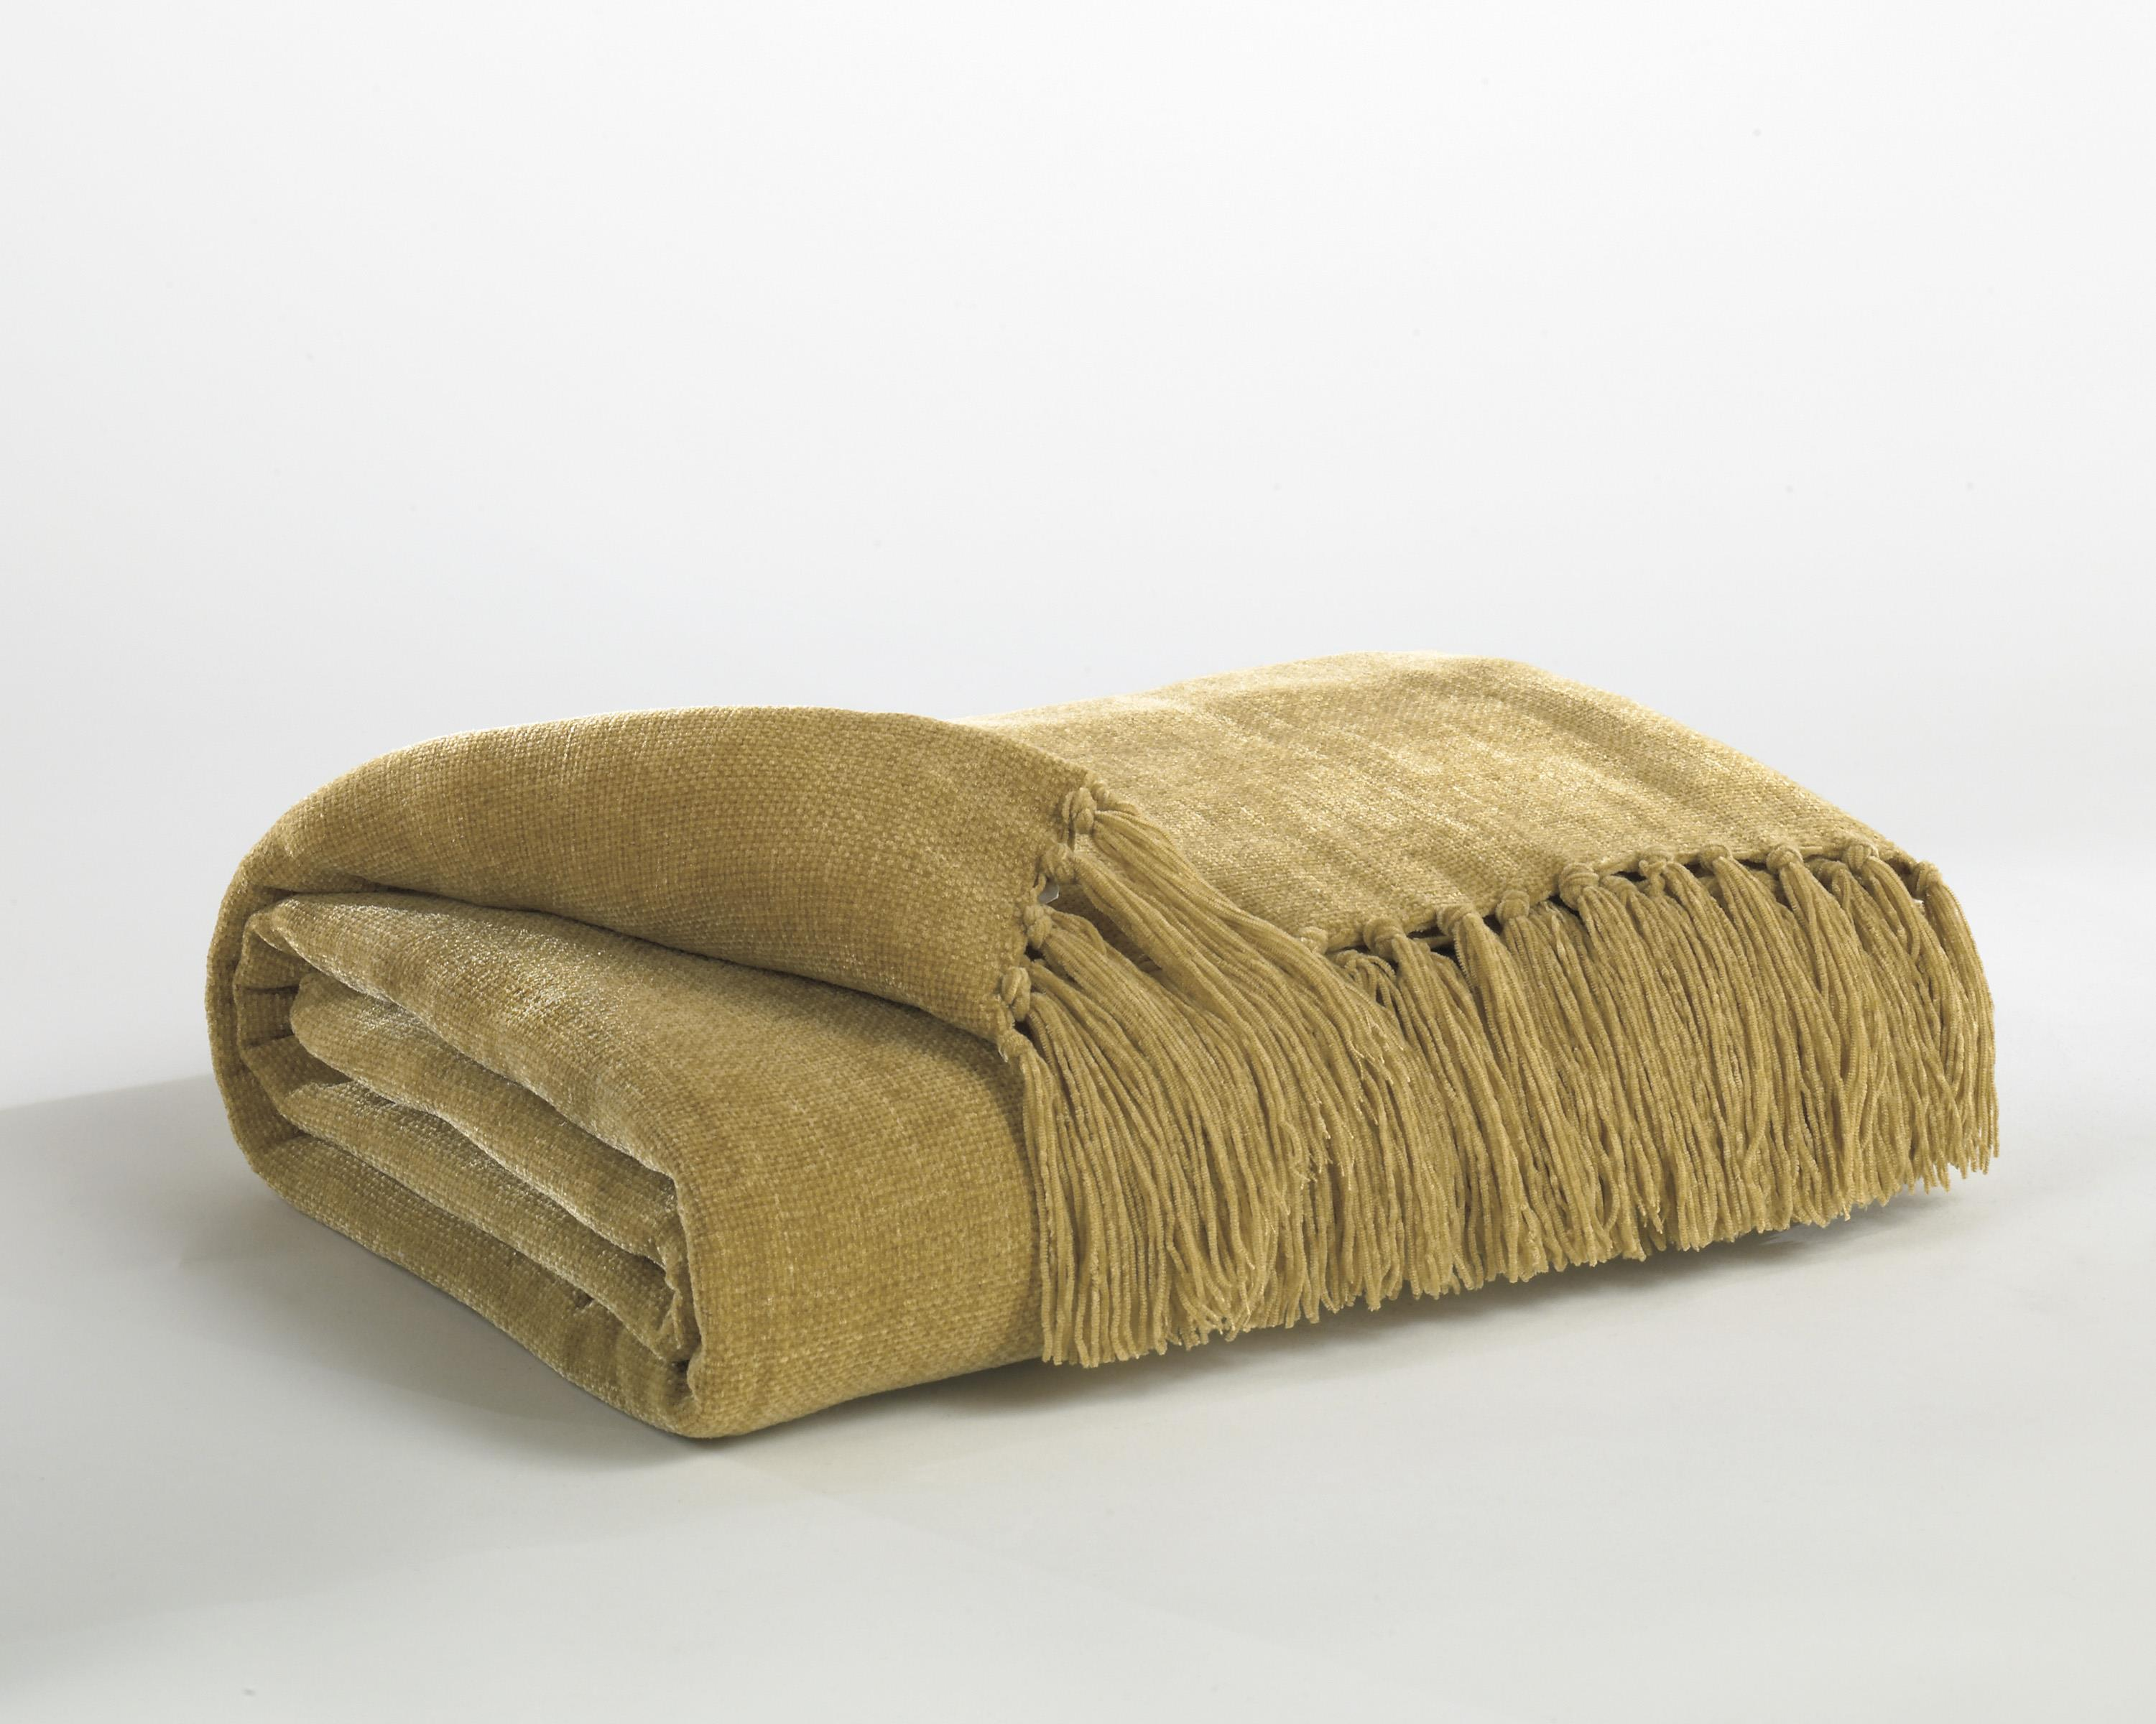 Signature Design by Ashley Throws Revere - Bronze Throw - Item Number: A1000030T